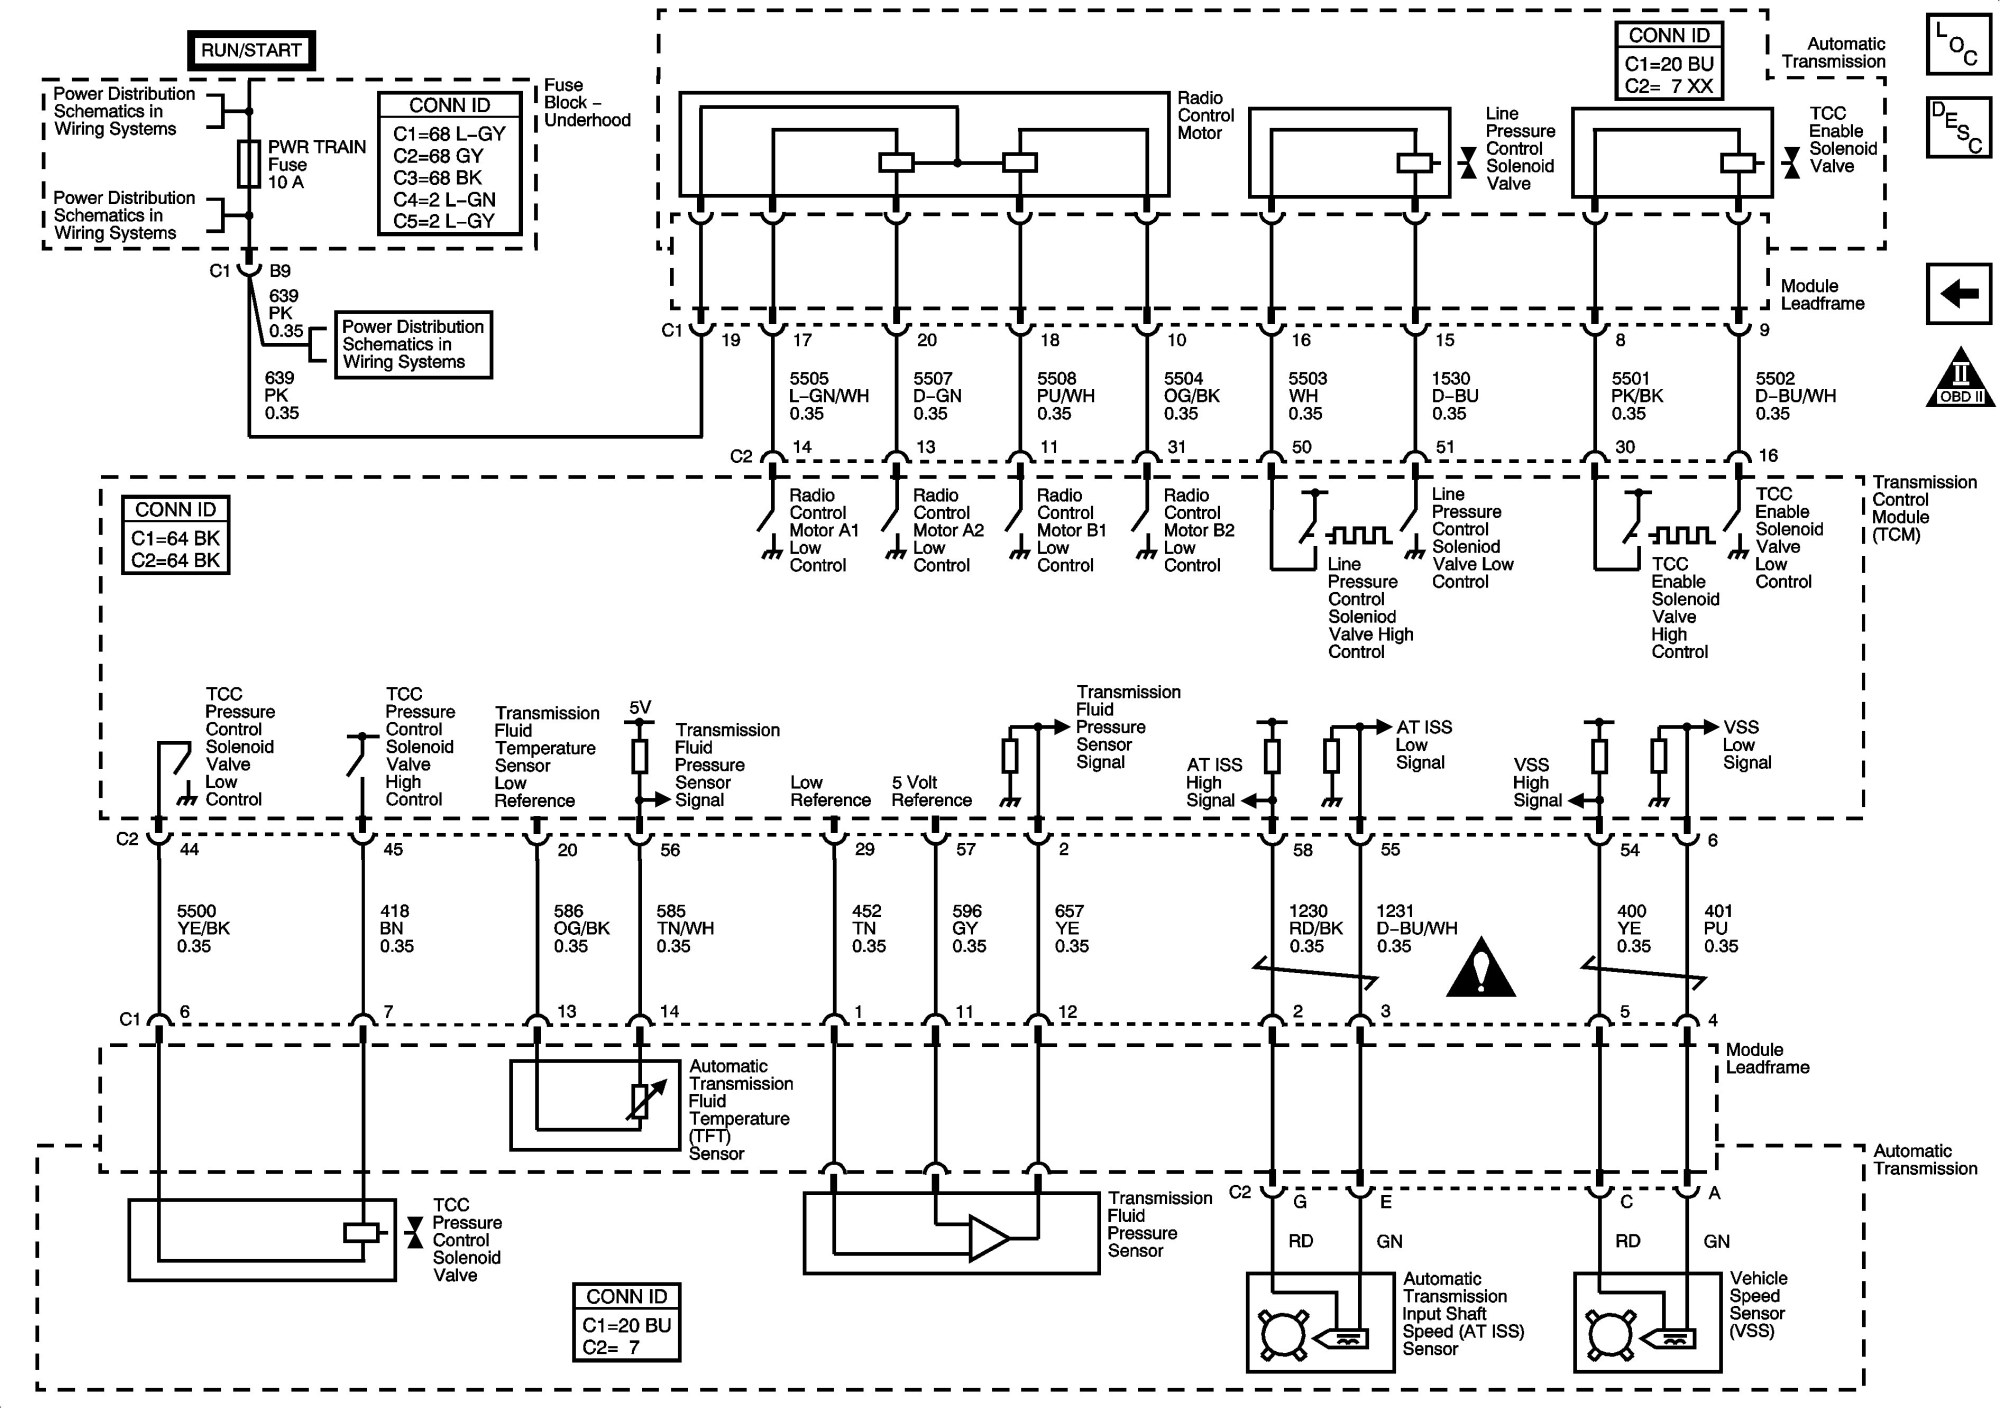 hight resolution of 1997 saturn sl1 engine diagram 2001 saturn sl1 transmission diagram wiring library of 1997 saturn sl1